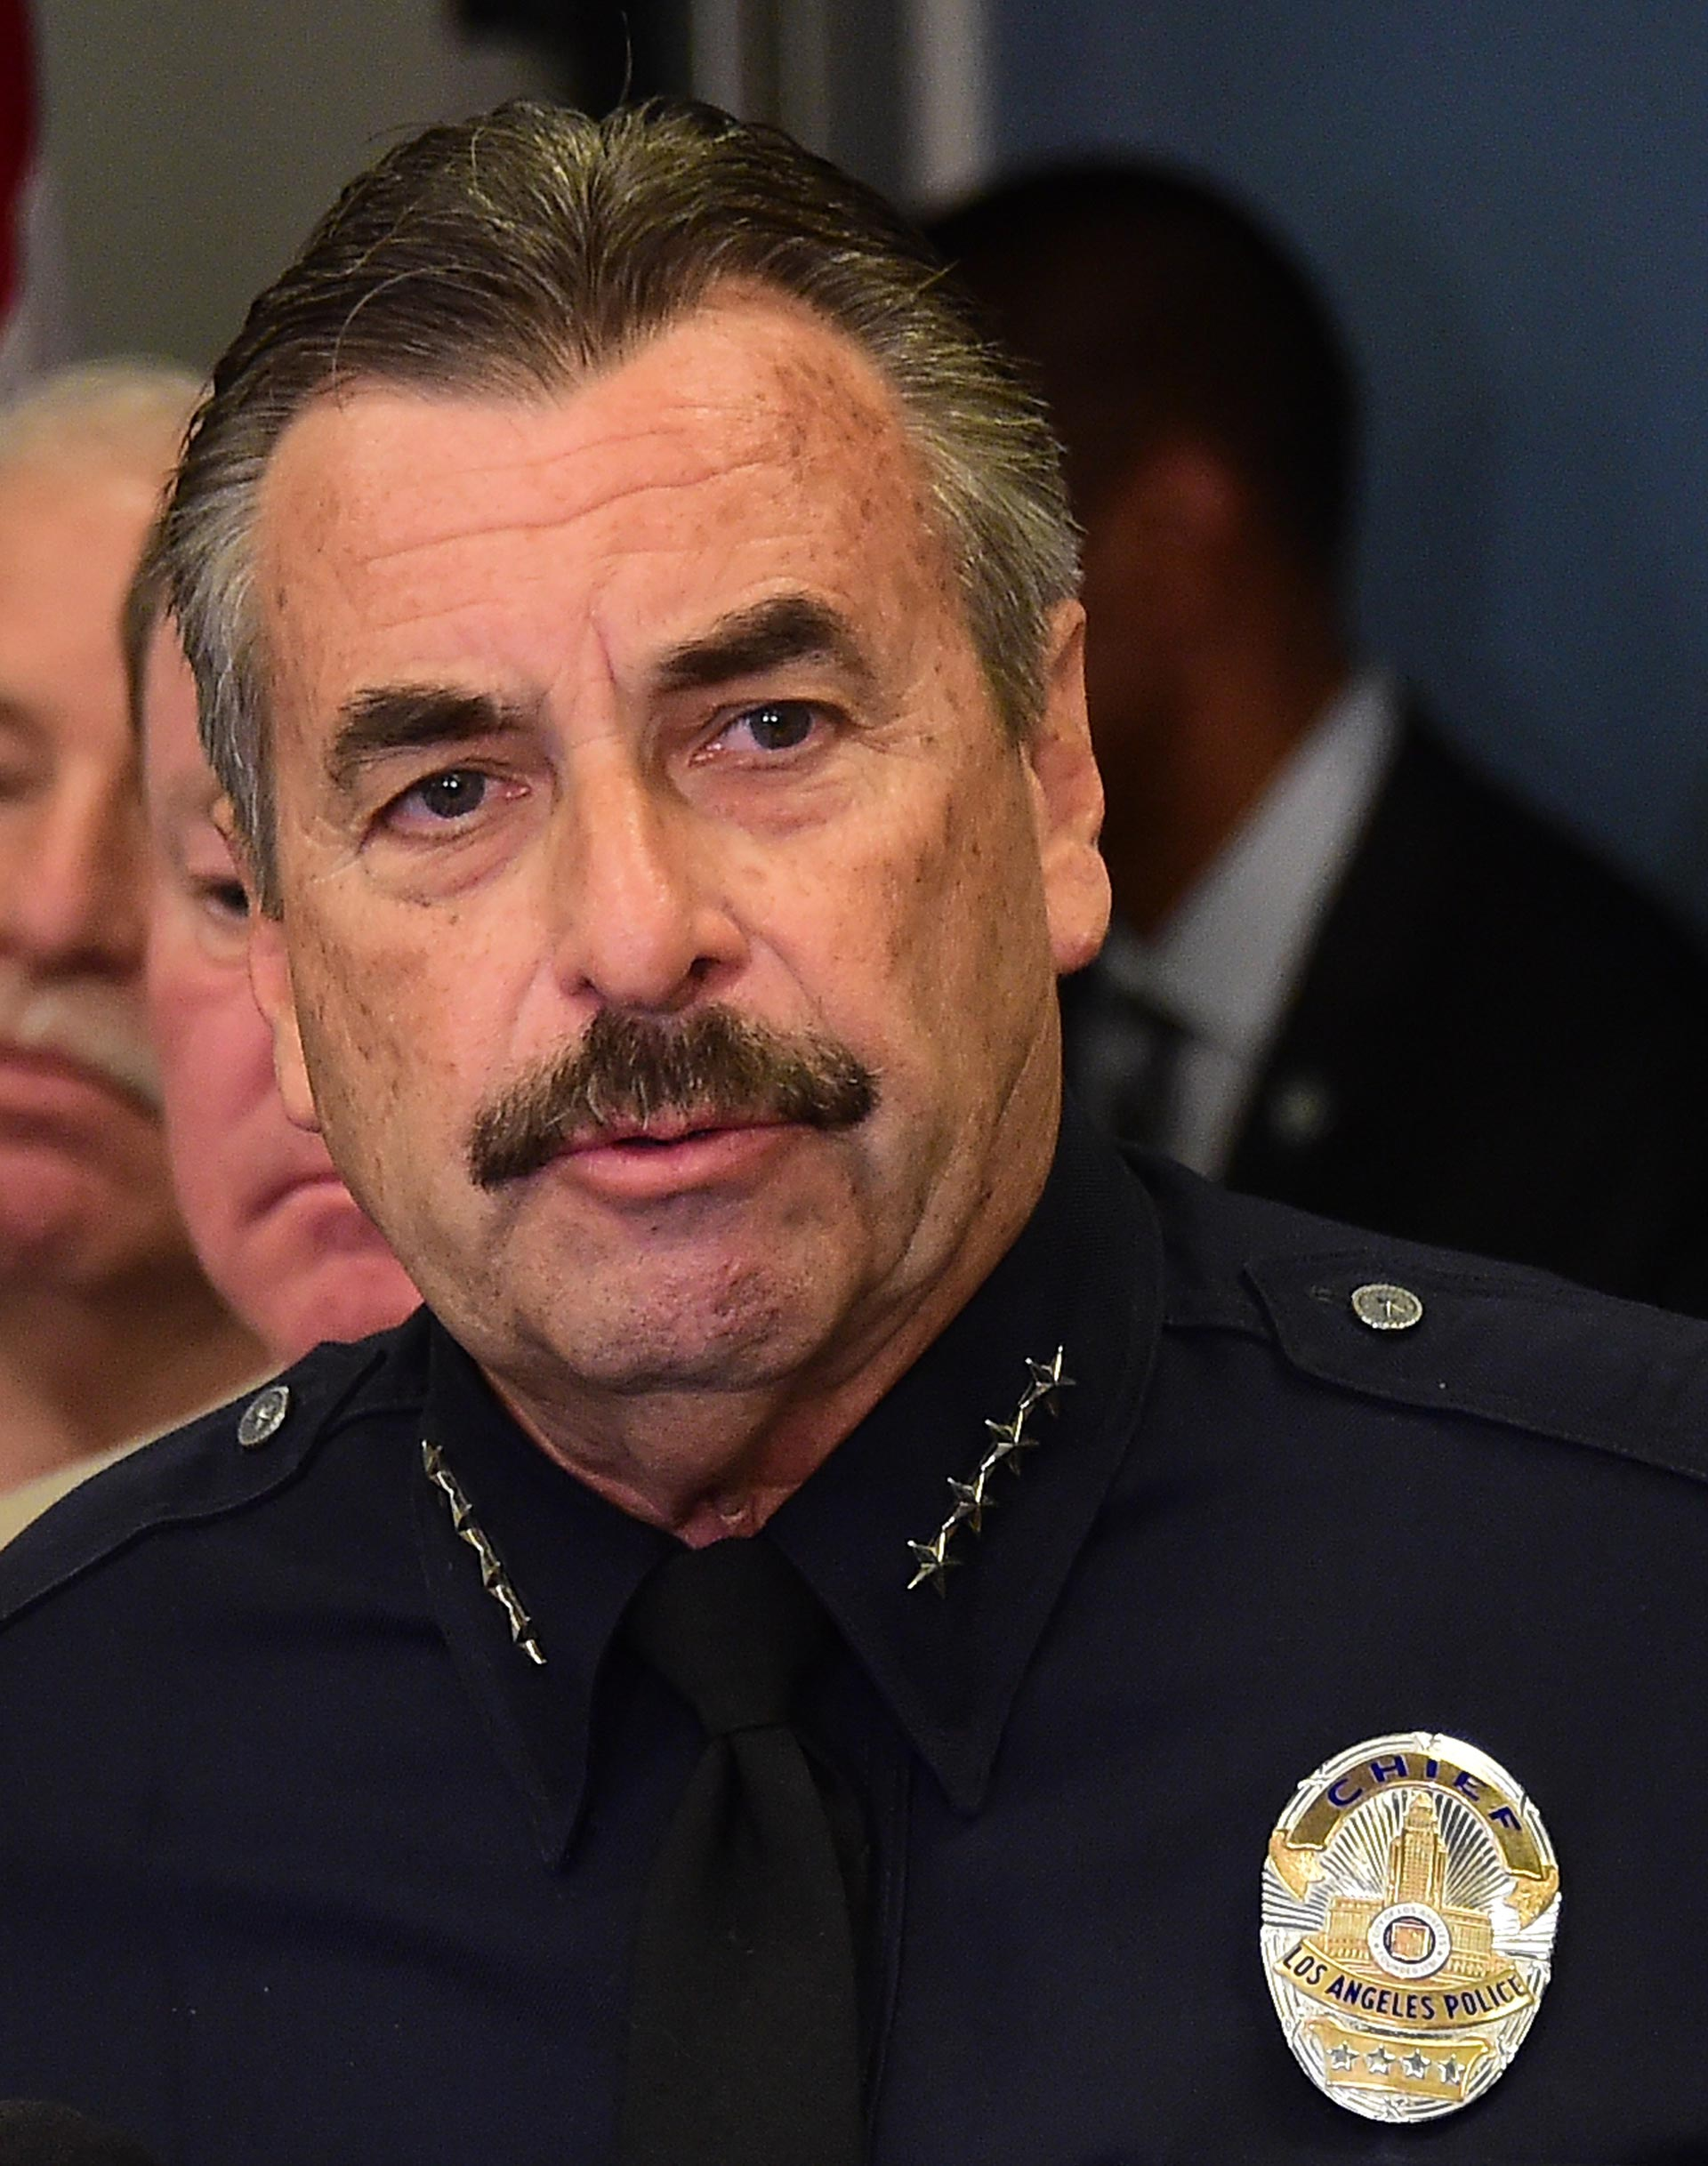 Los Angeles police chief Charlie Beck.